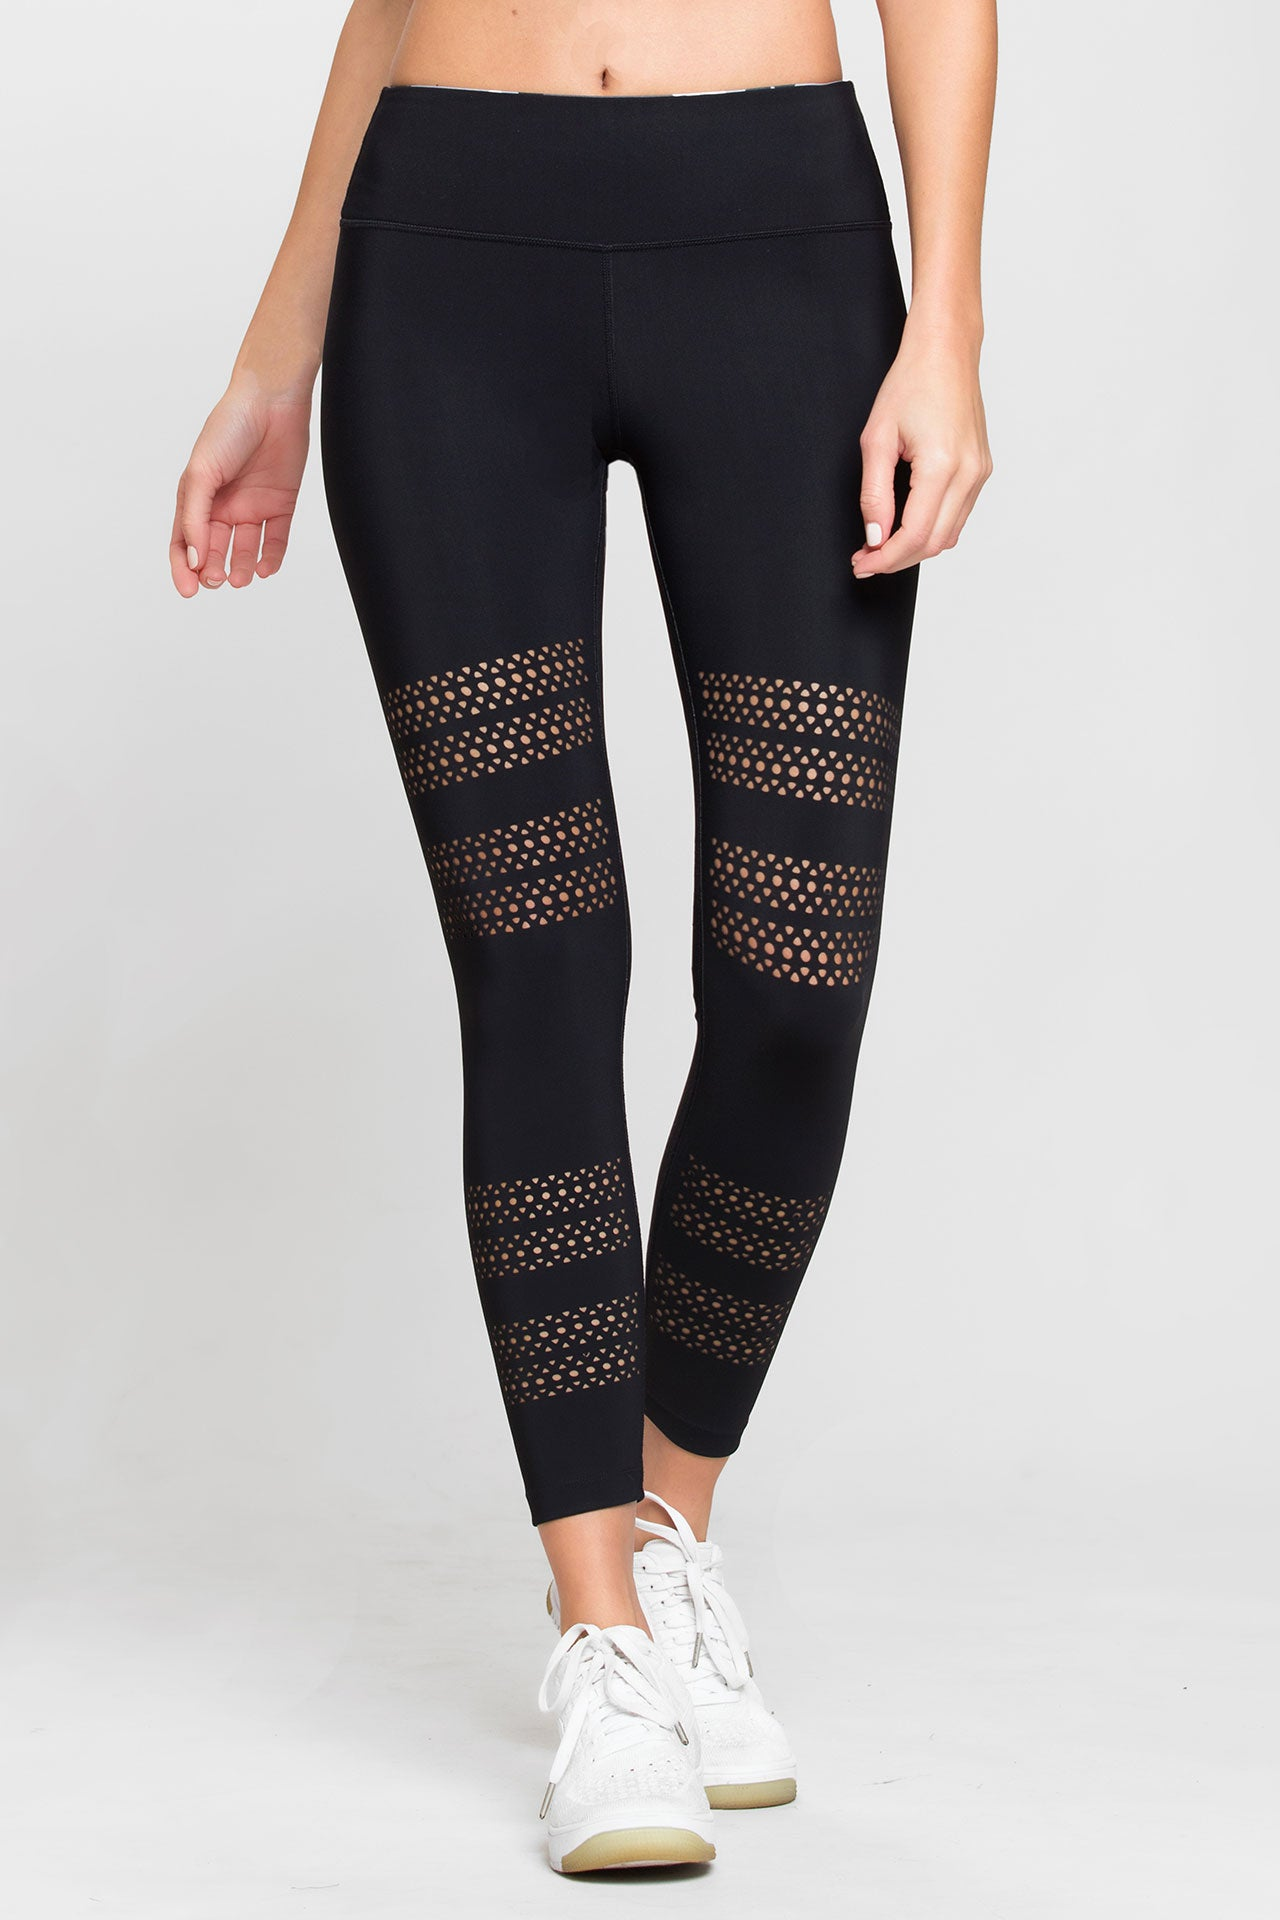 Go With The Flow Leggings in Black. - size M (also in L,S,XS) Track & Bliss